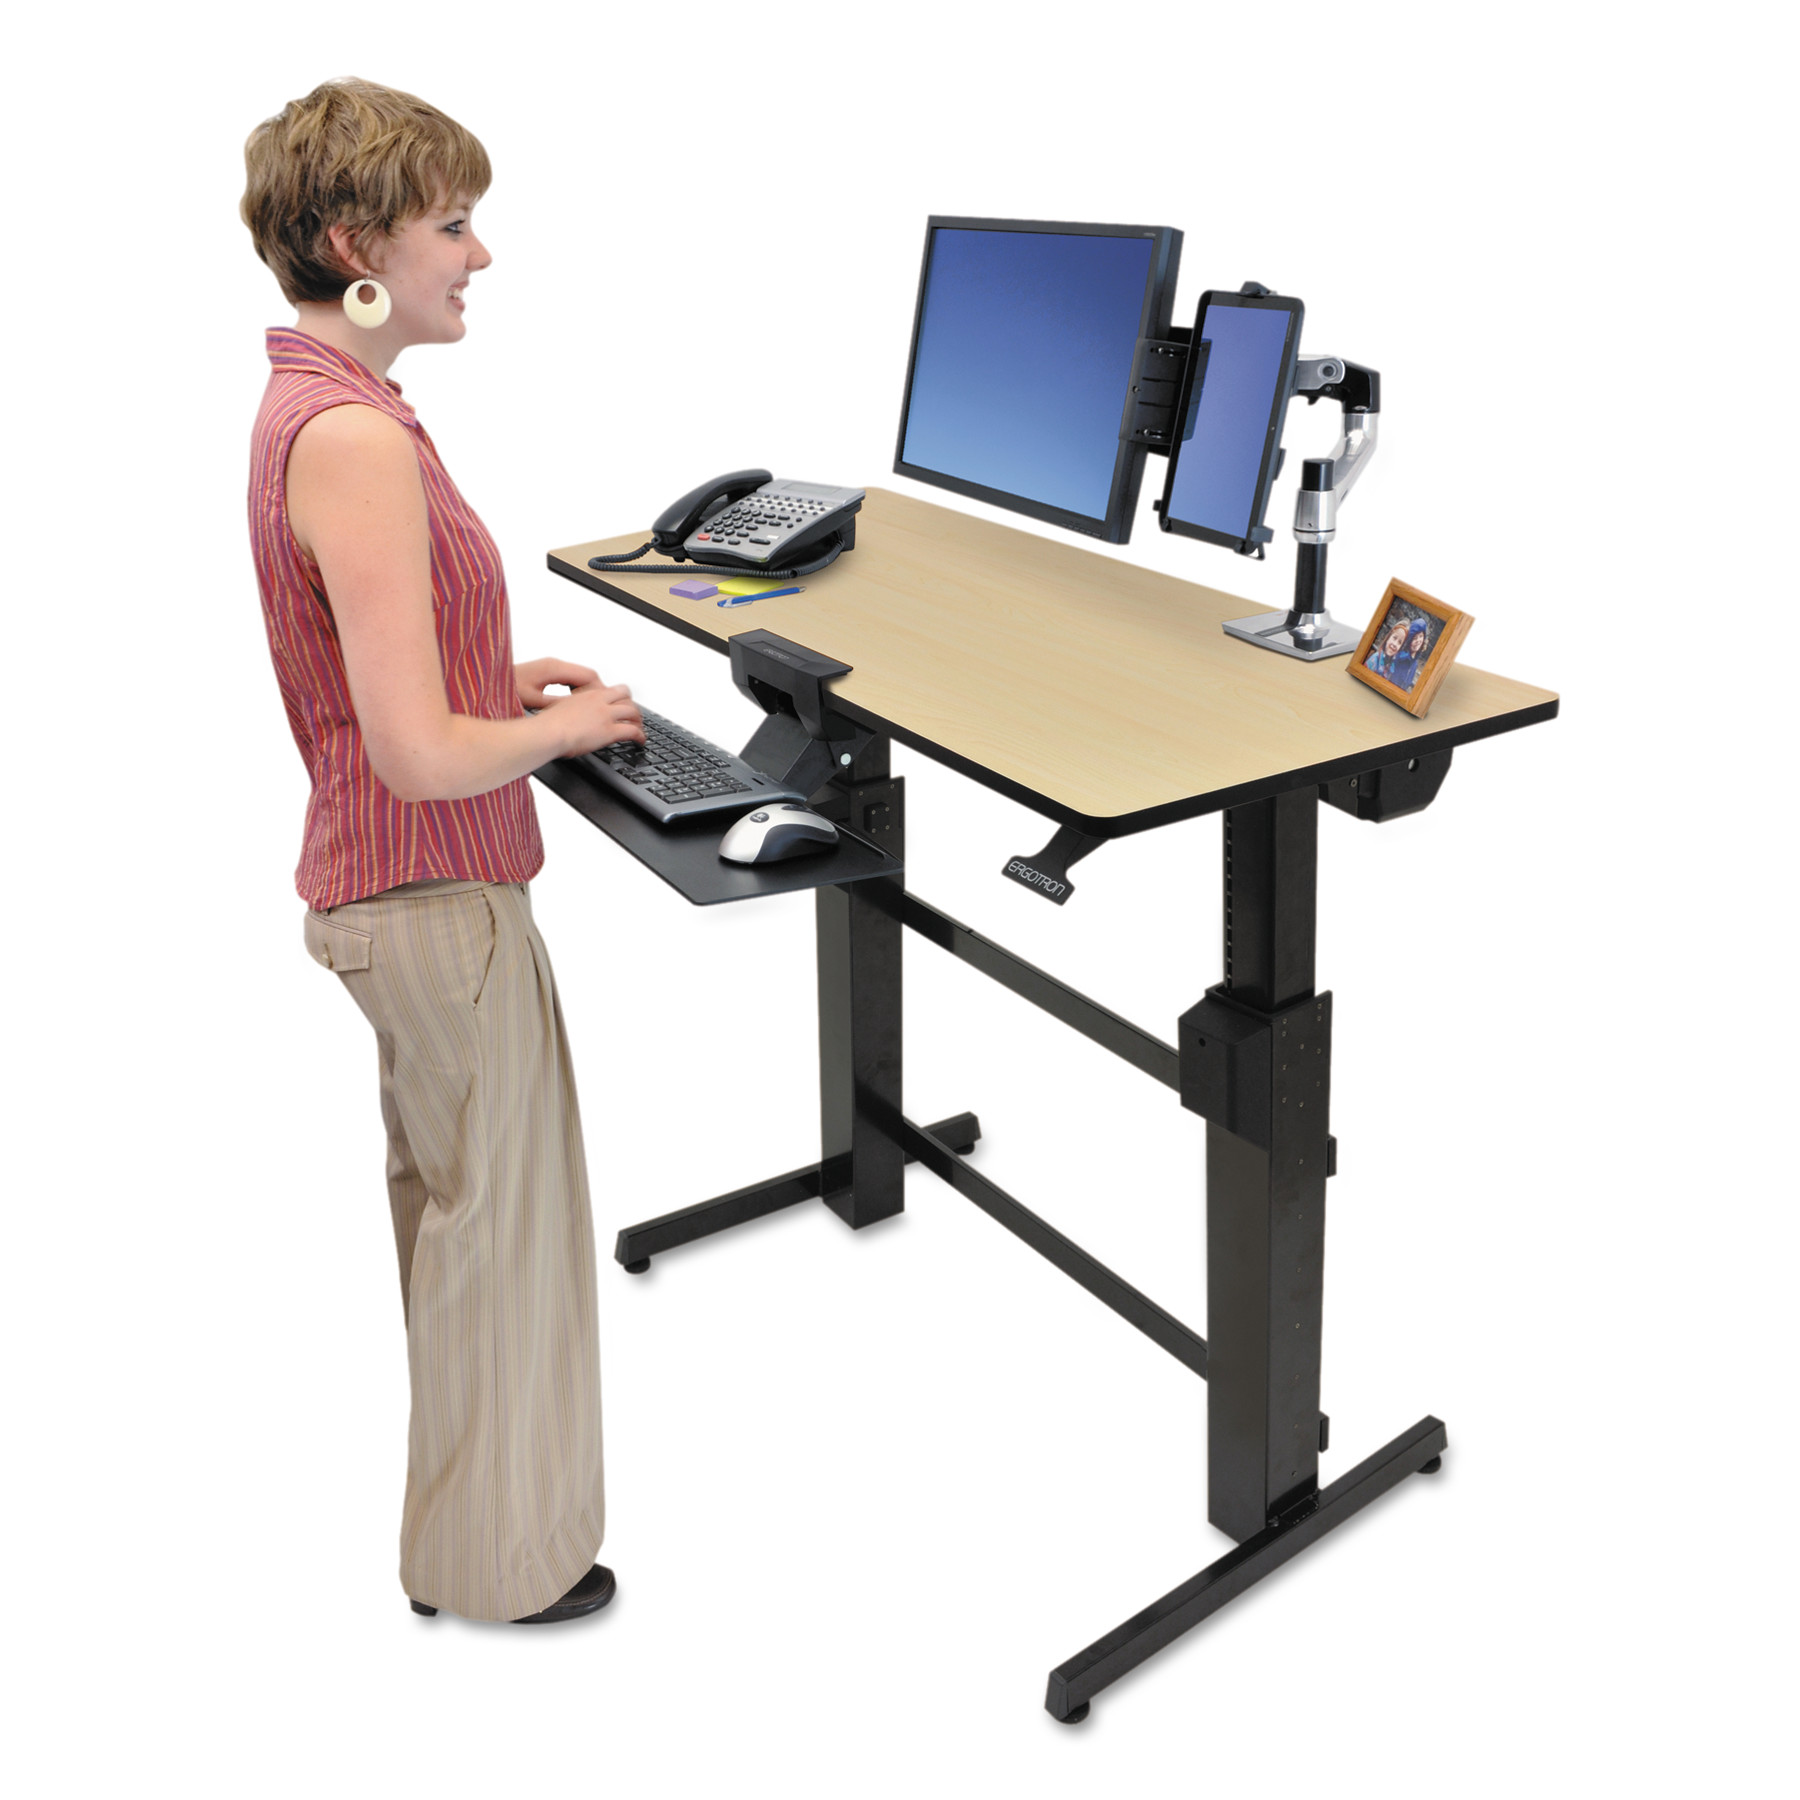 Ergotron WorkFit D Sit-Stand Workstation, 47 5/8 x 23 1/2 x 50 5/8, Birch/Black